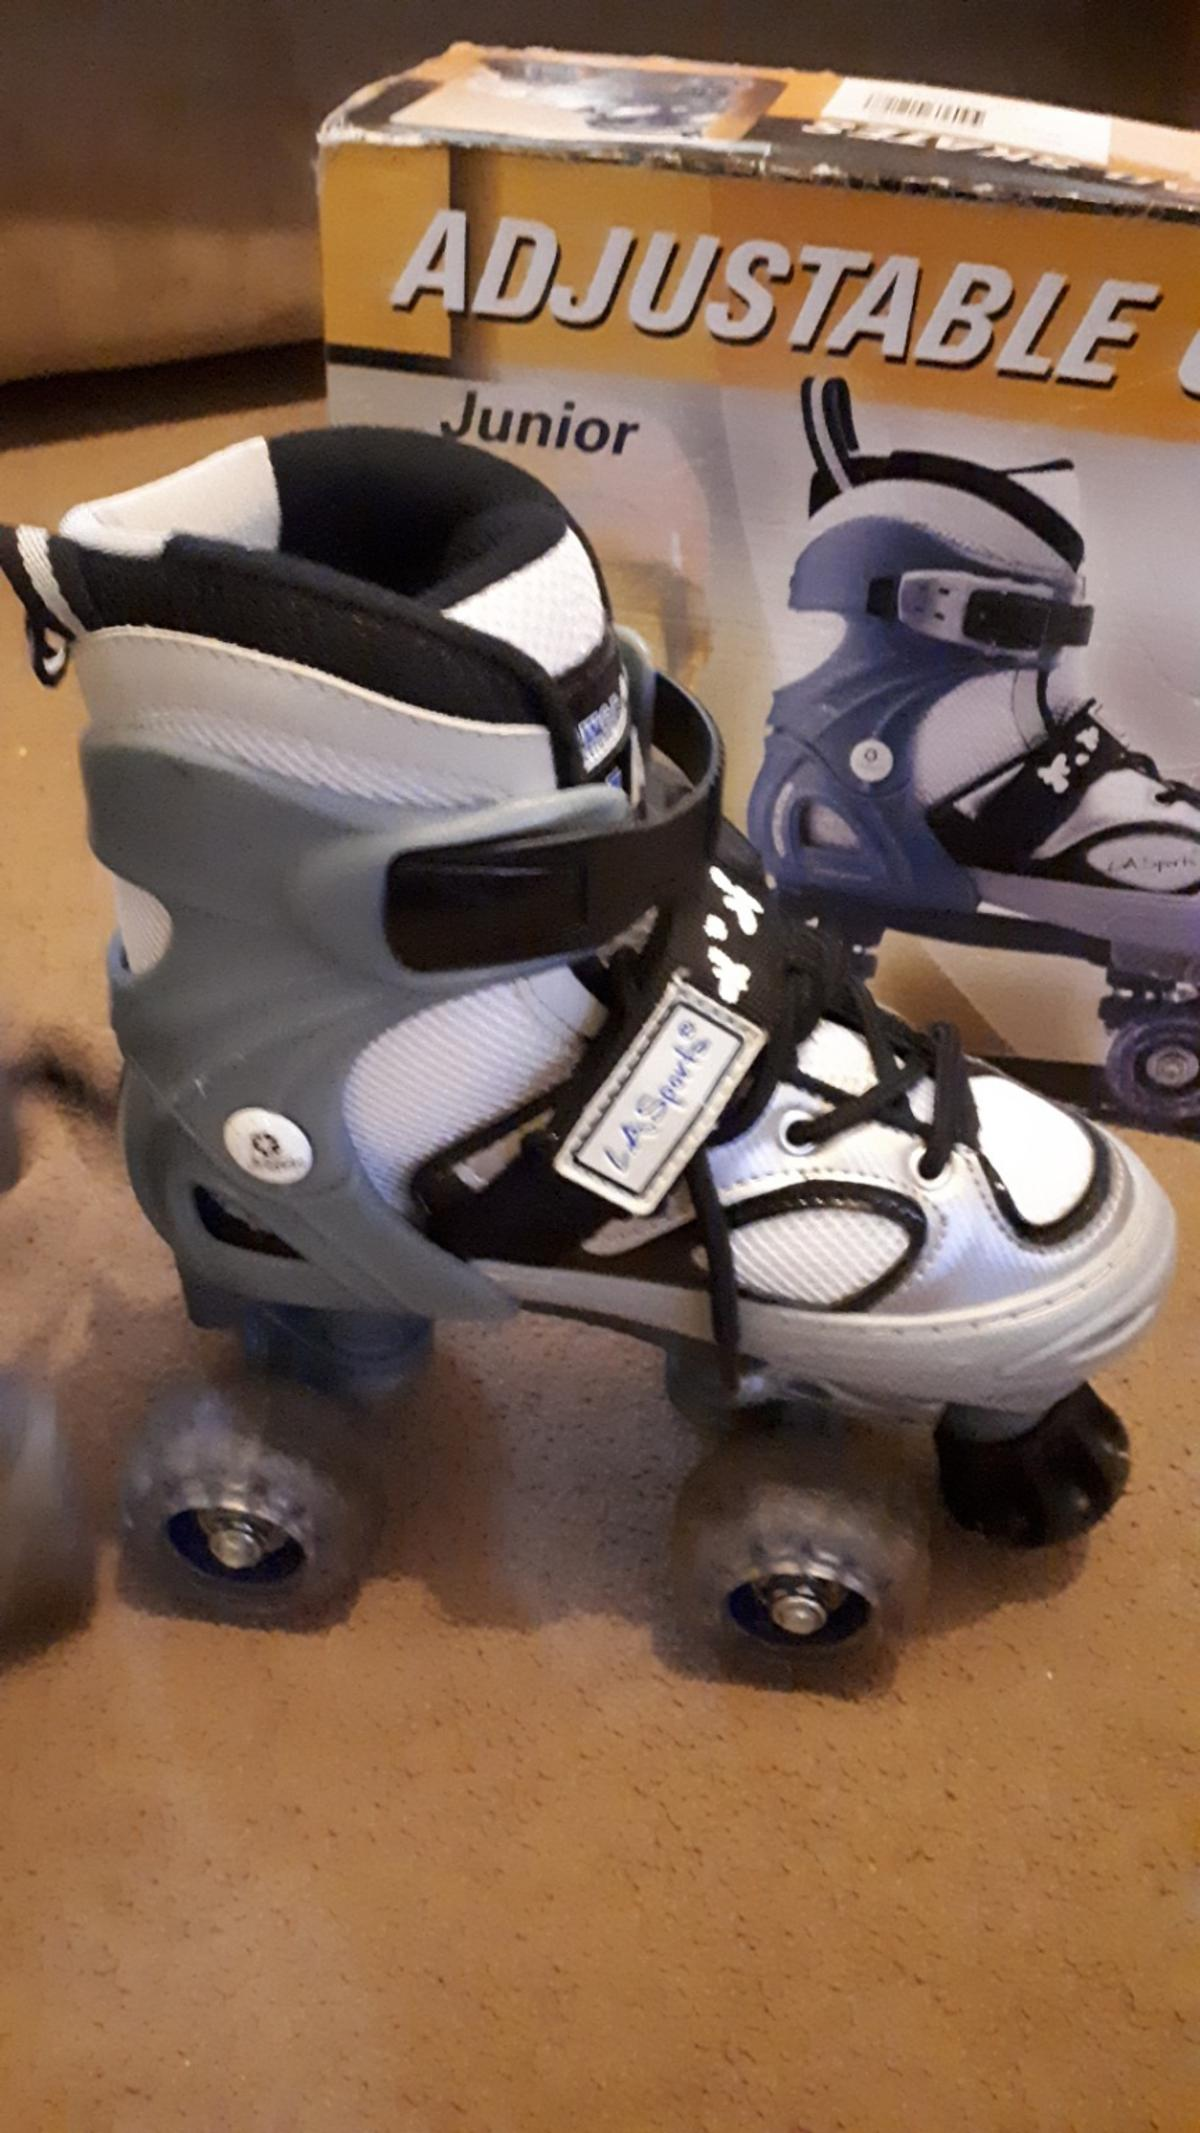 Size 29 - 32 UK 11-1 Excellent condition slight wear on wheels from very little use. origional box (bit bashed )